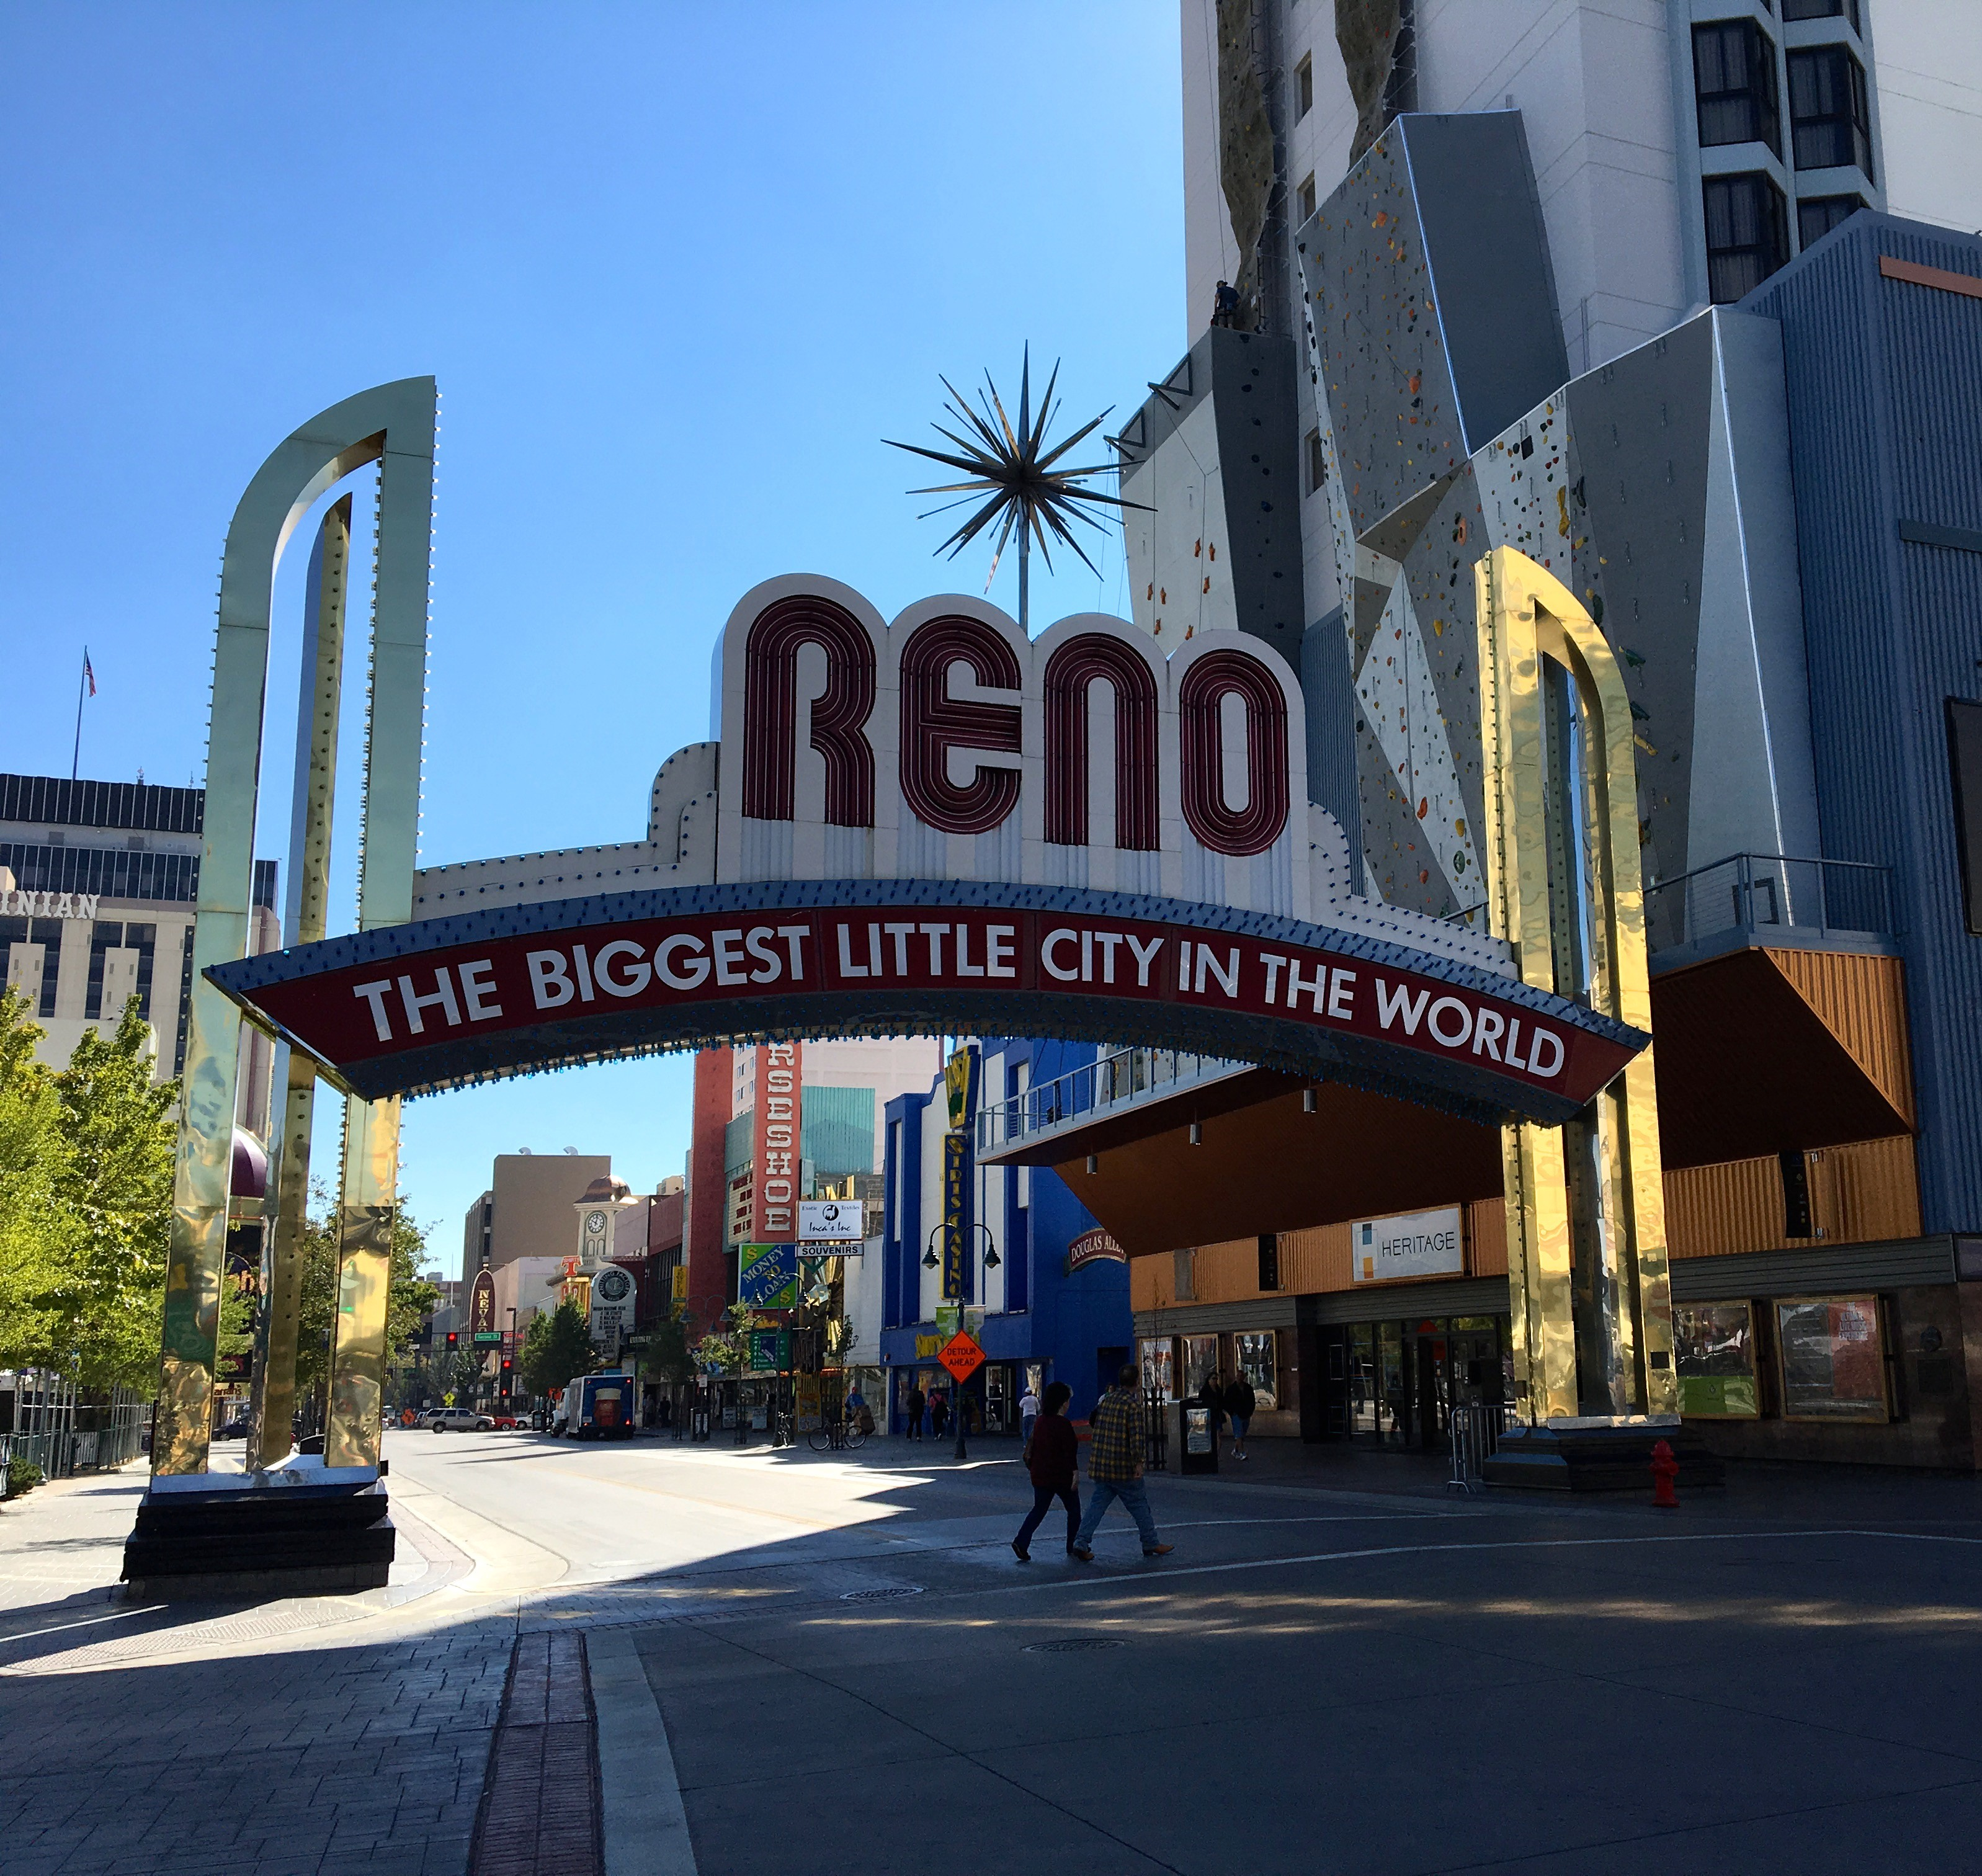 Nsta Reno 5 Science Education Insights From The Biggest Little City In The World By Ileana Betancourt Medium